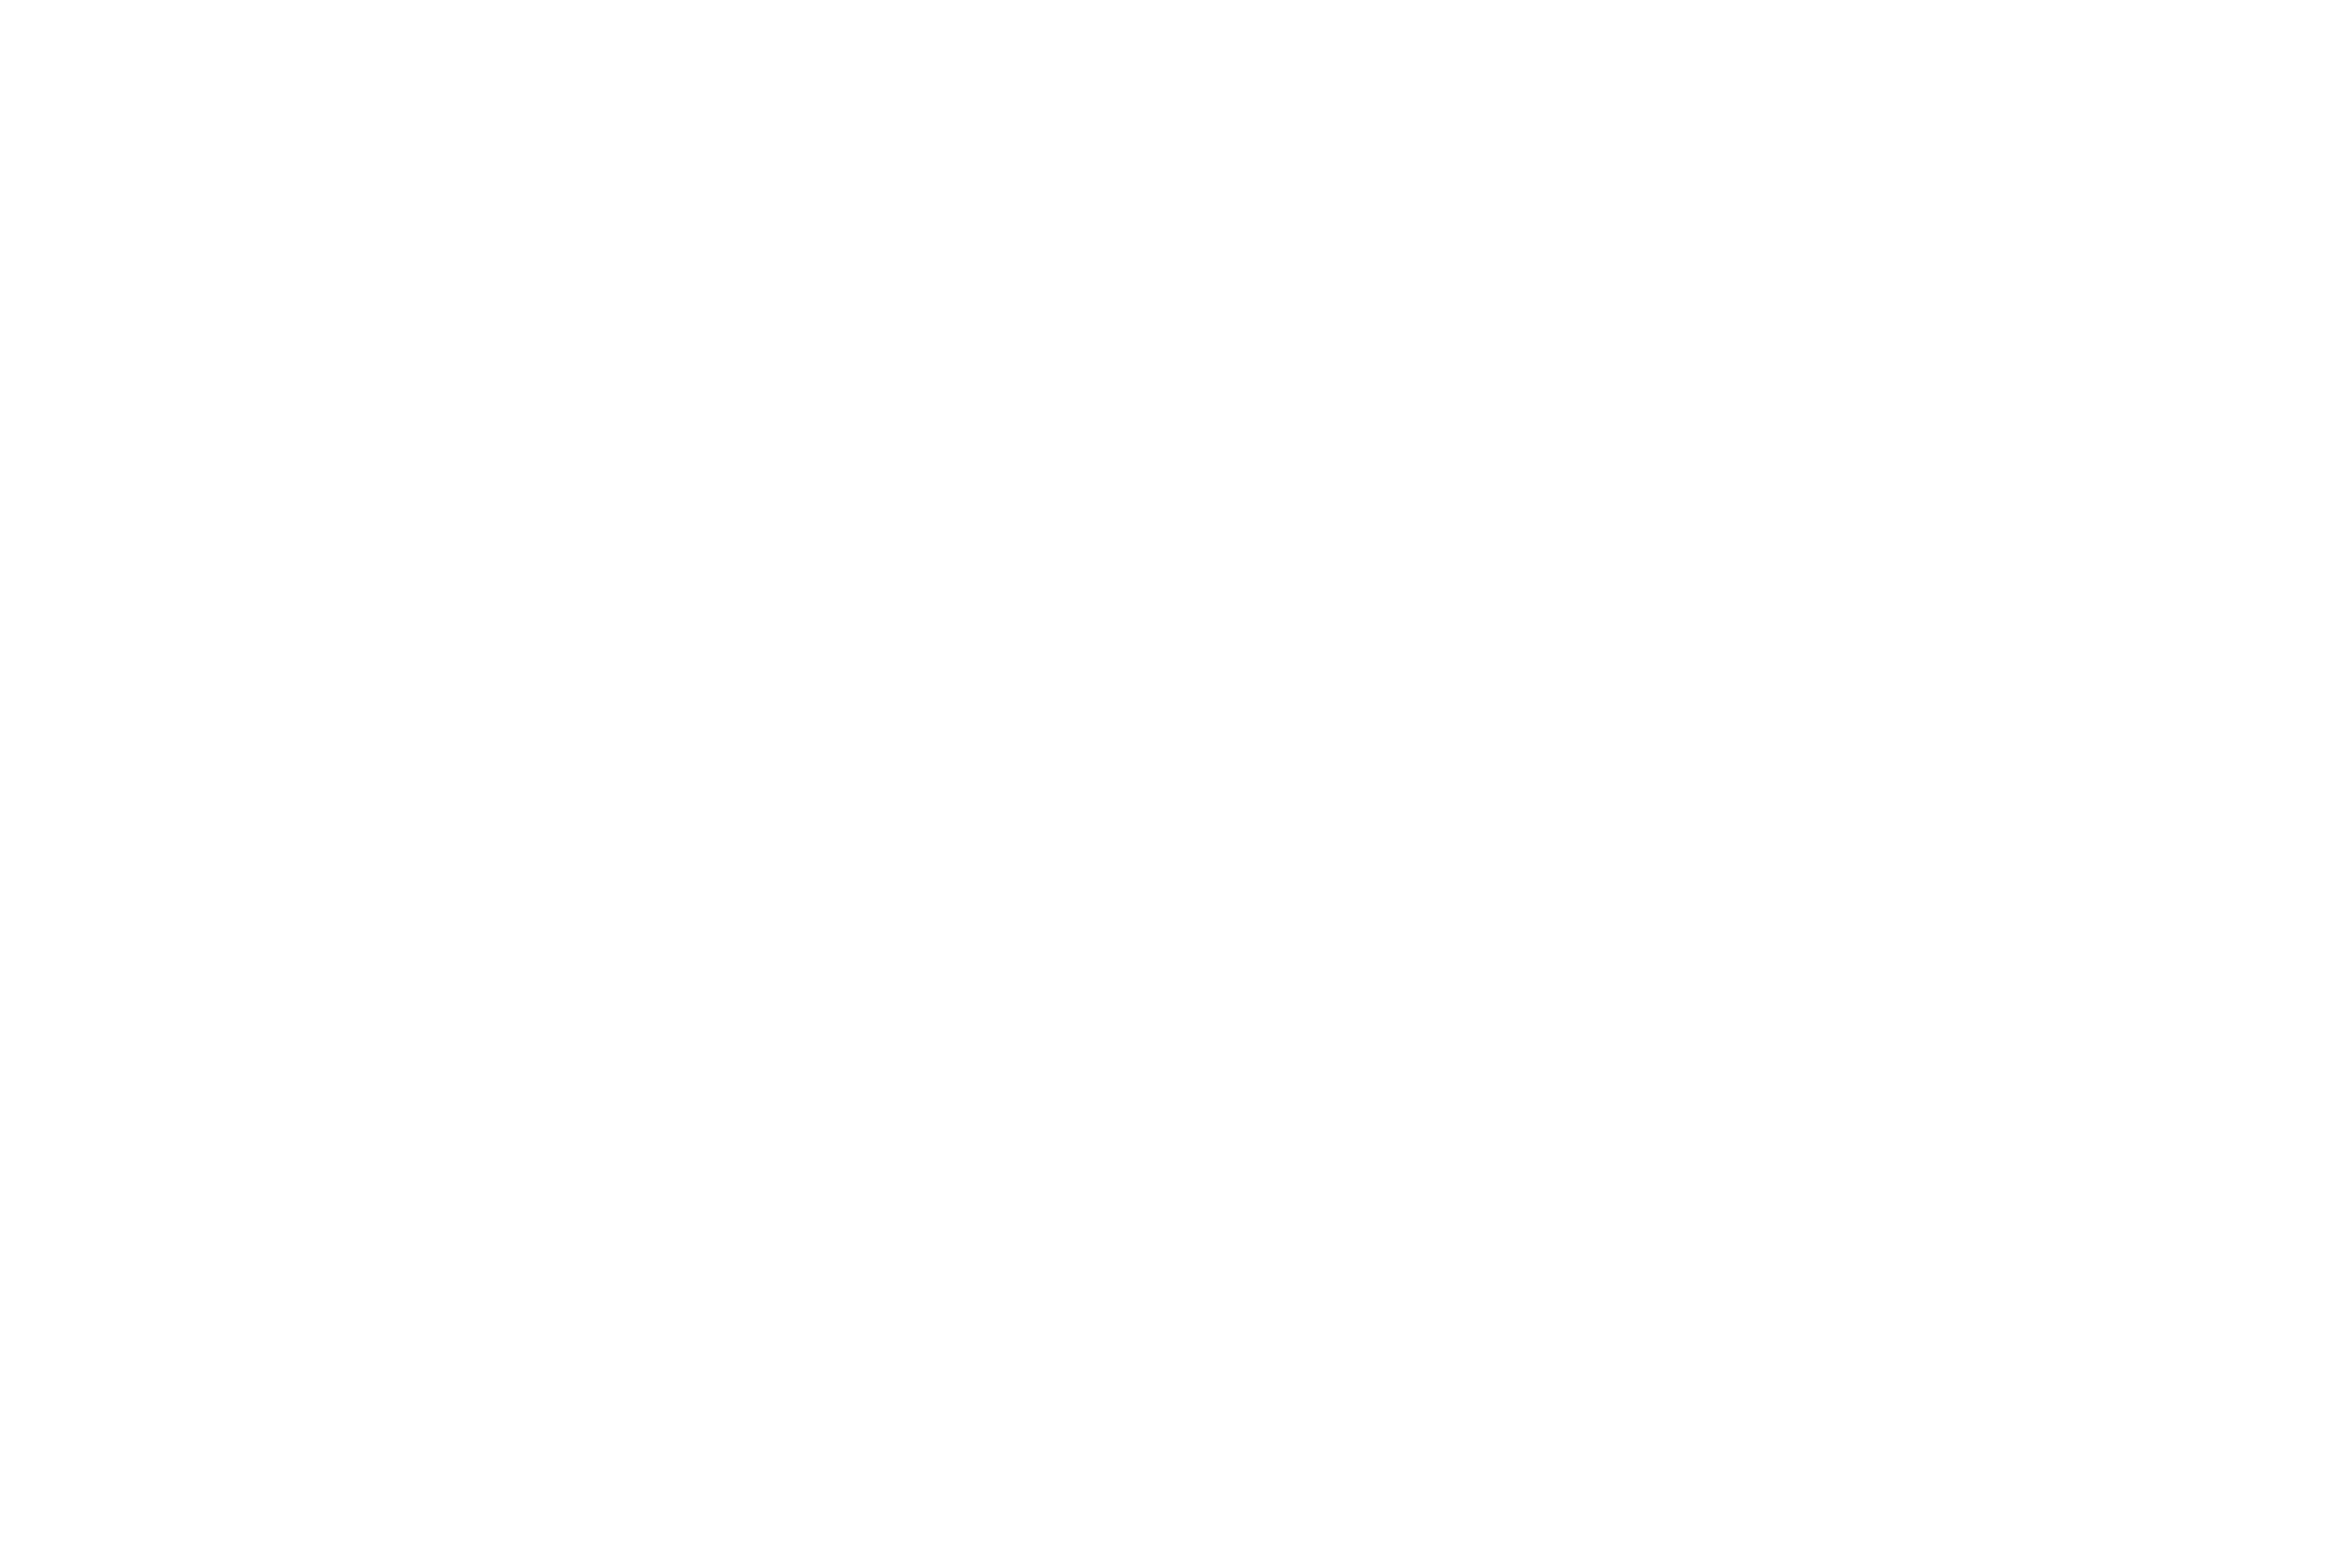 Chugach Training and Education Solutions